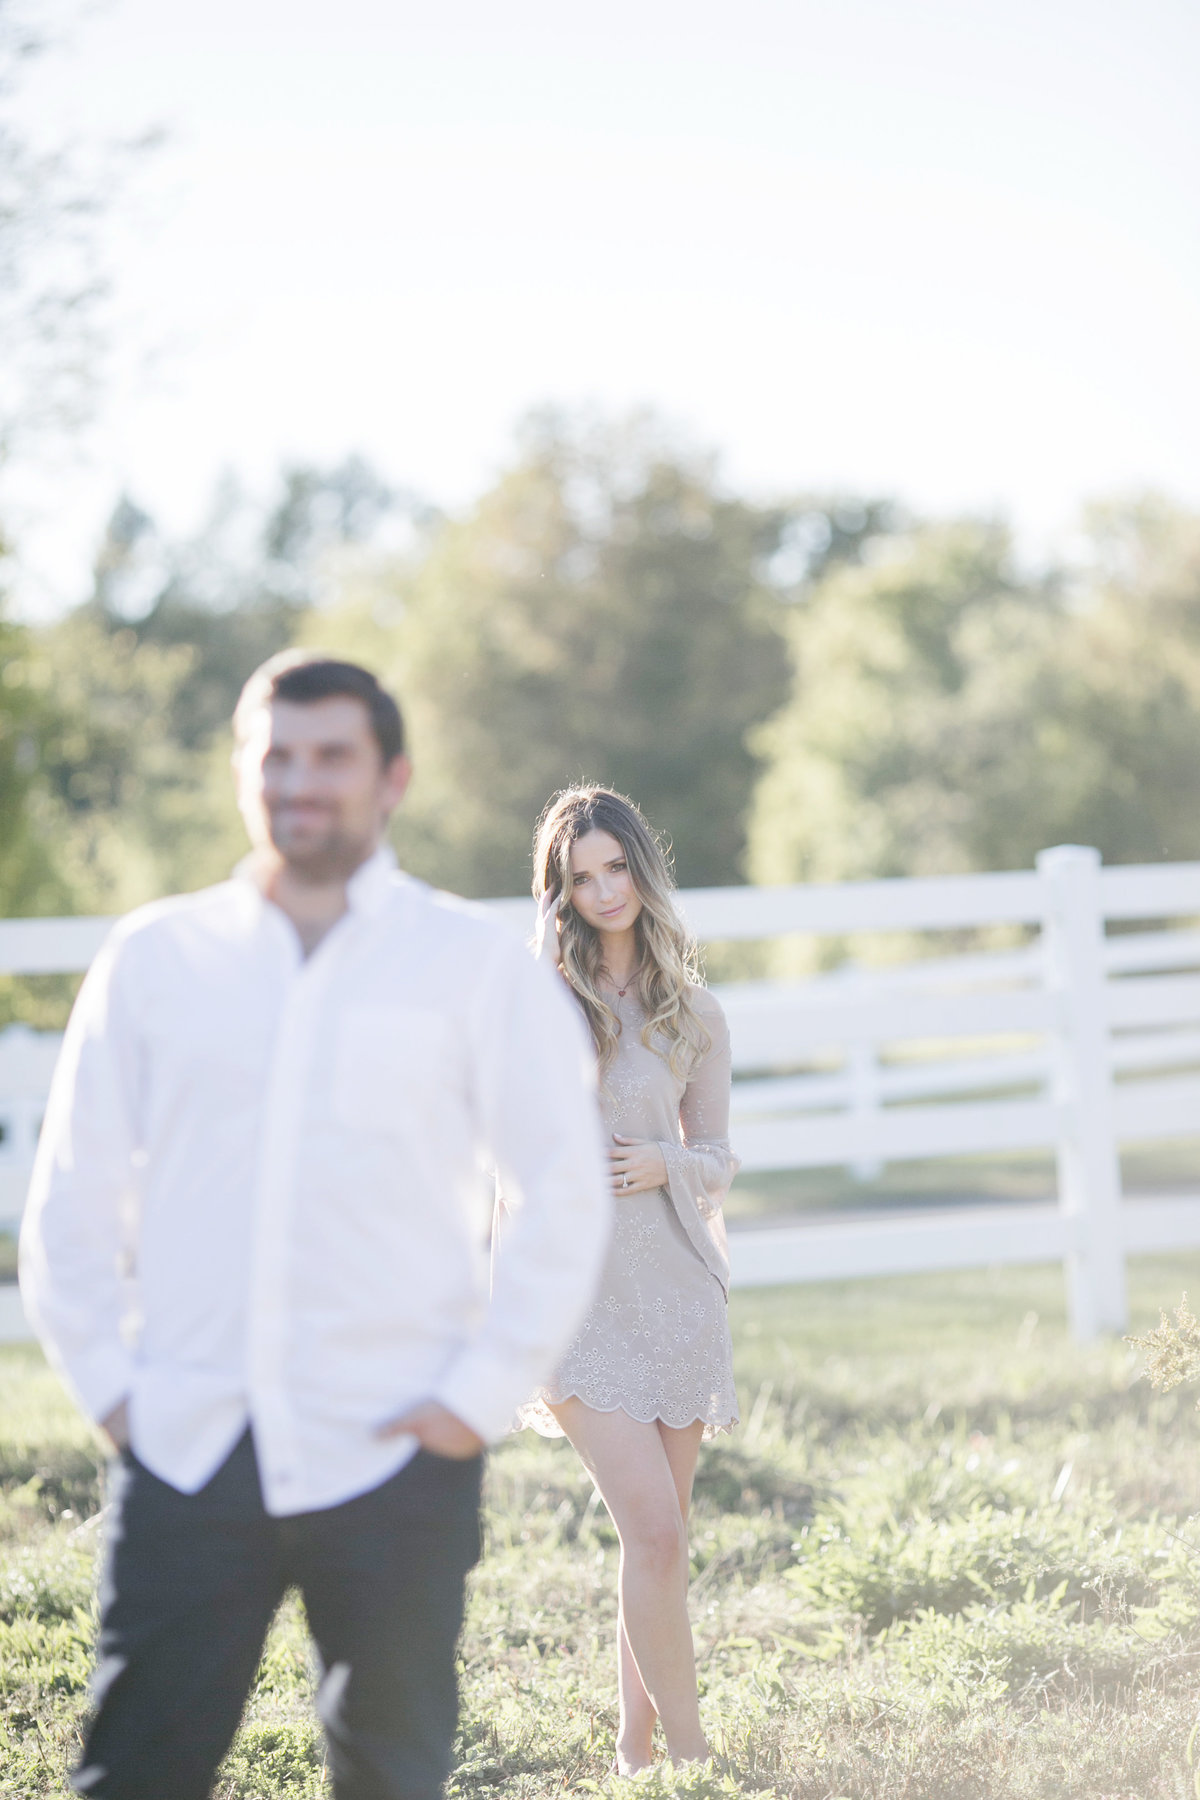 TIFFANY_WAYNE_photography_family_albany_saratoga_lifestyle_candid_love__engagement_pictures_0016